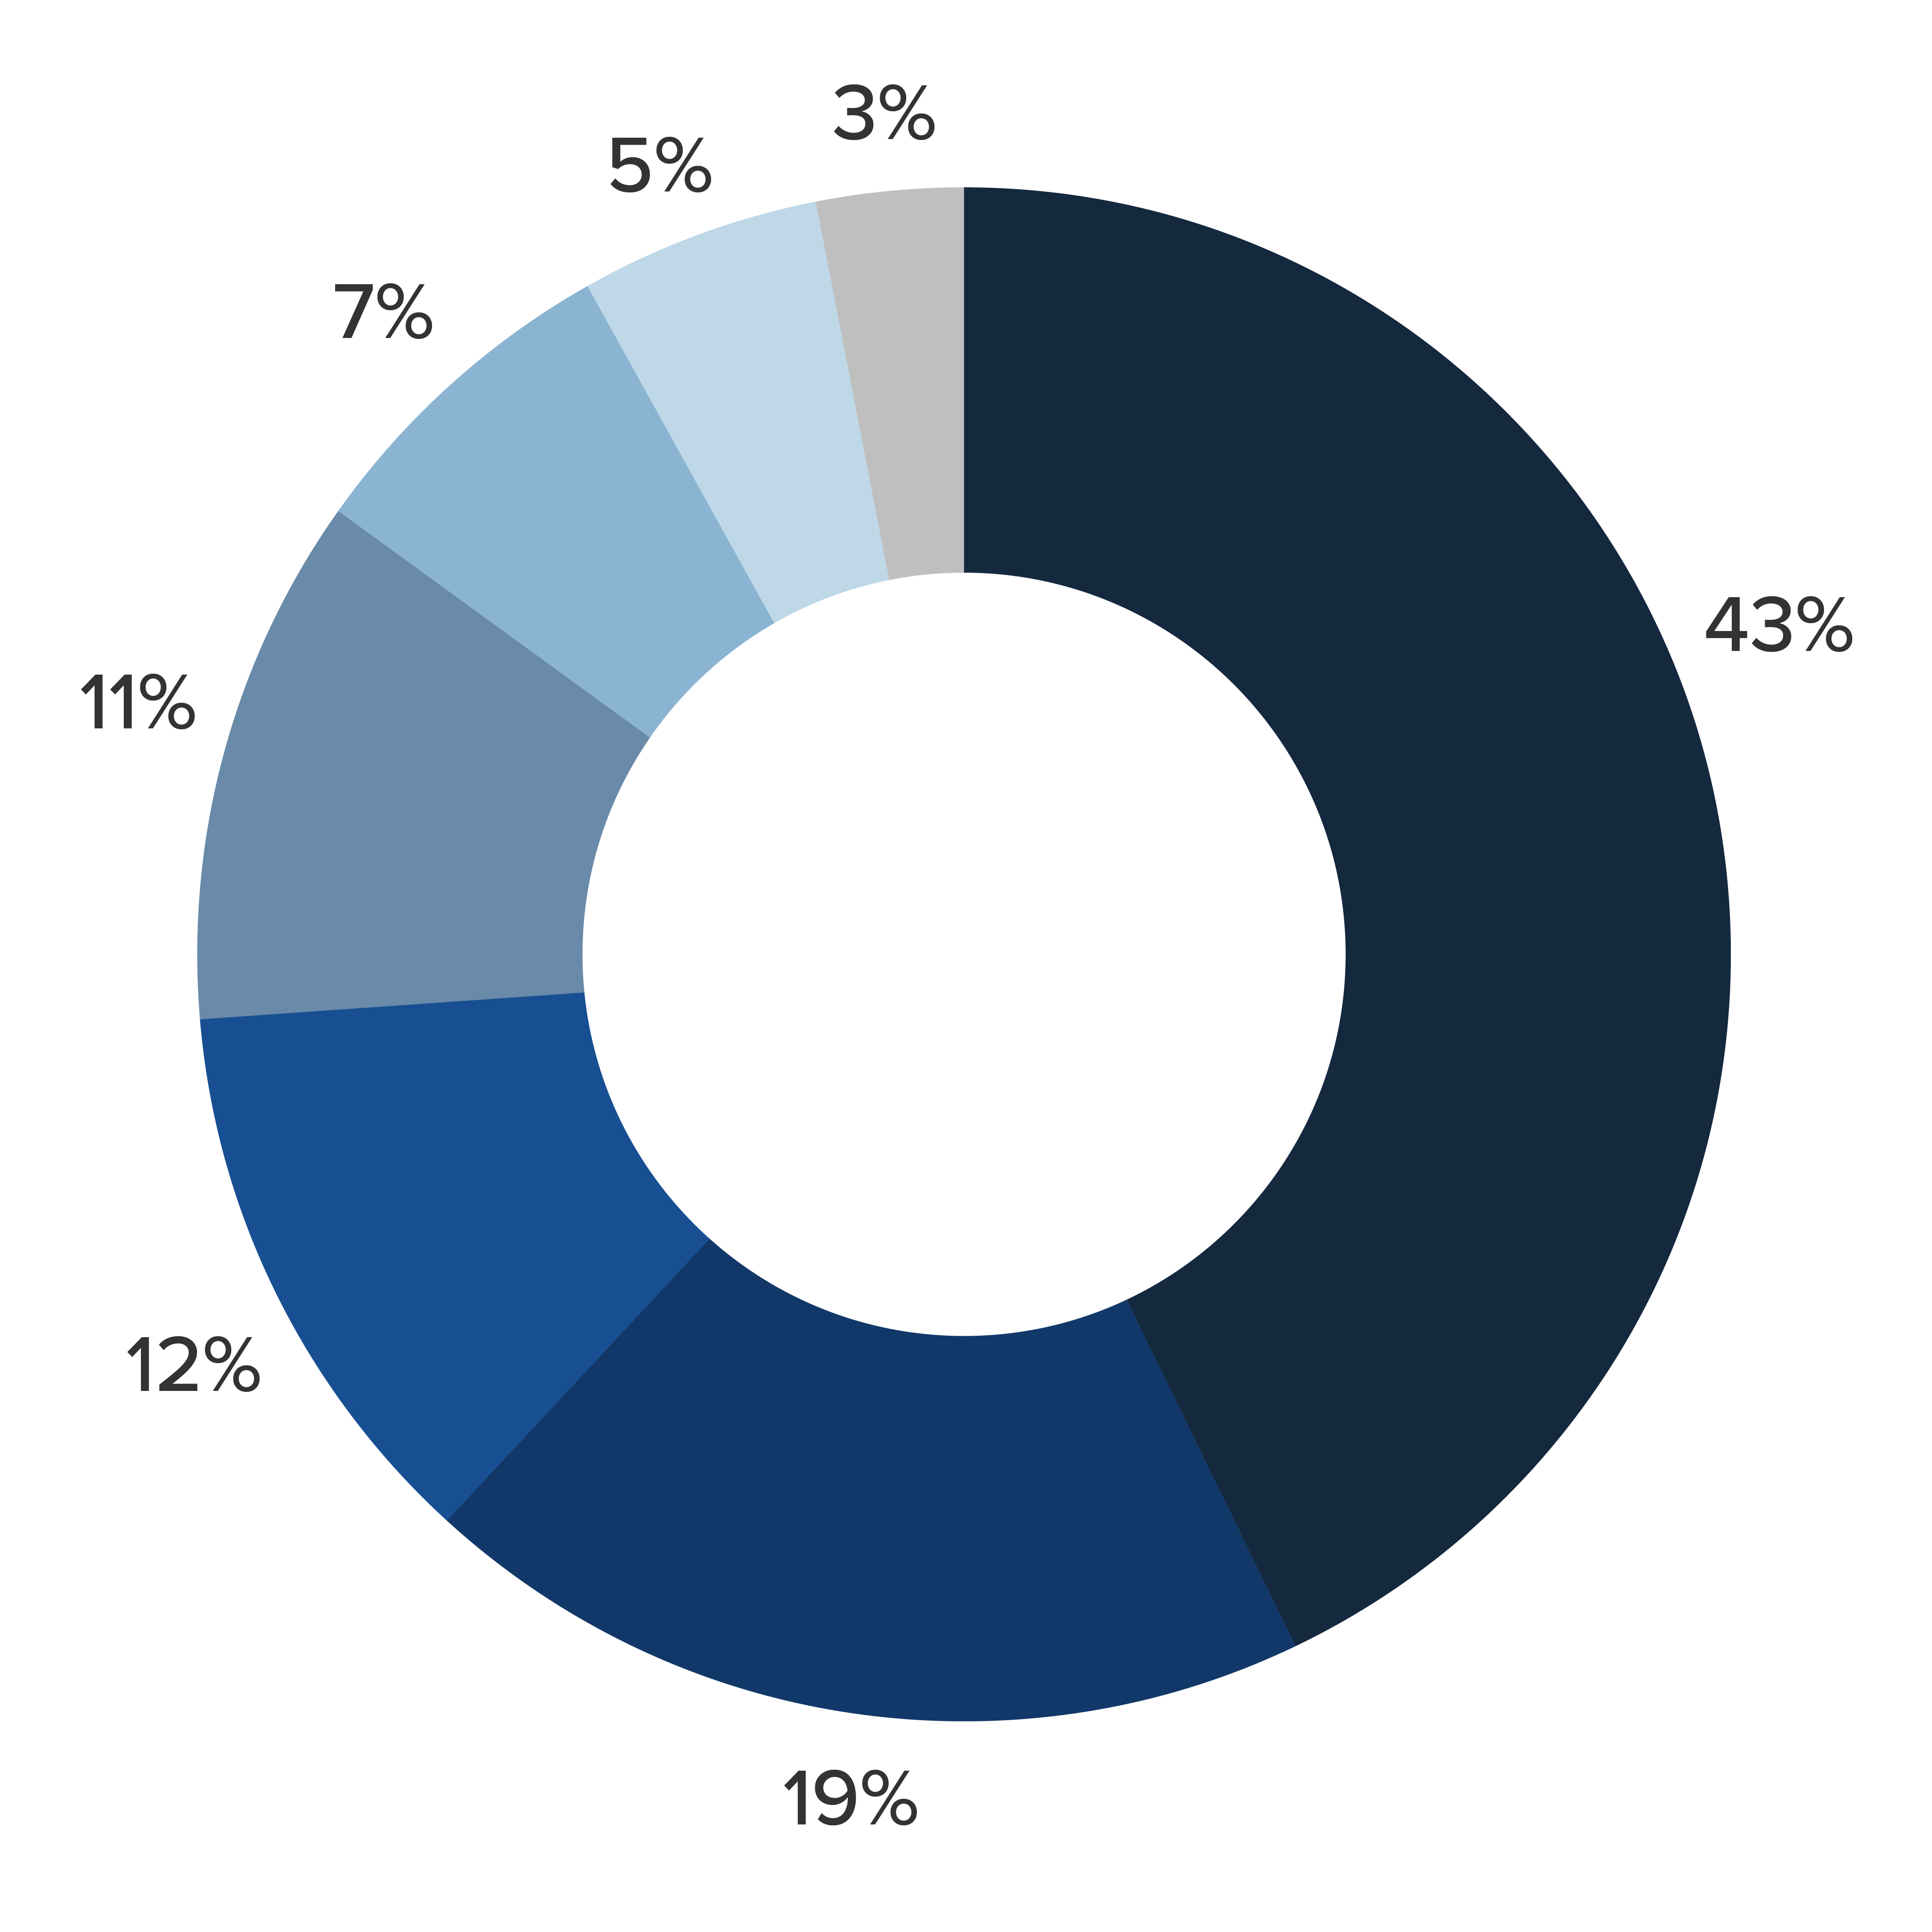 donut diagram showing percentages of global loyalty